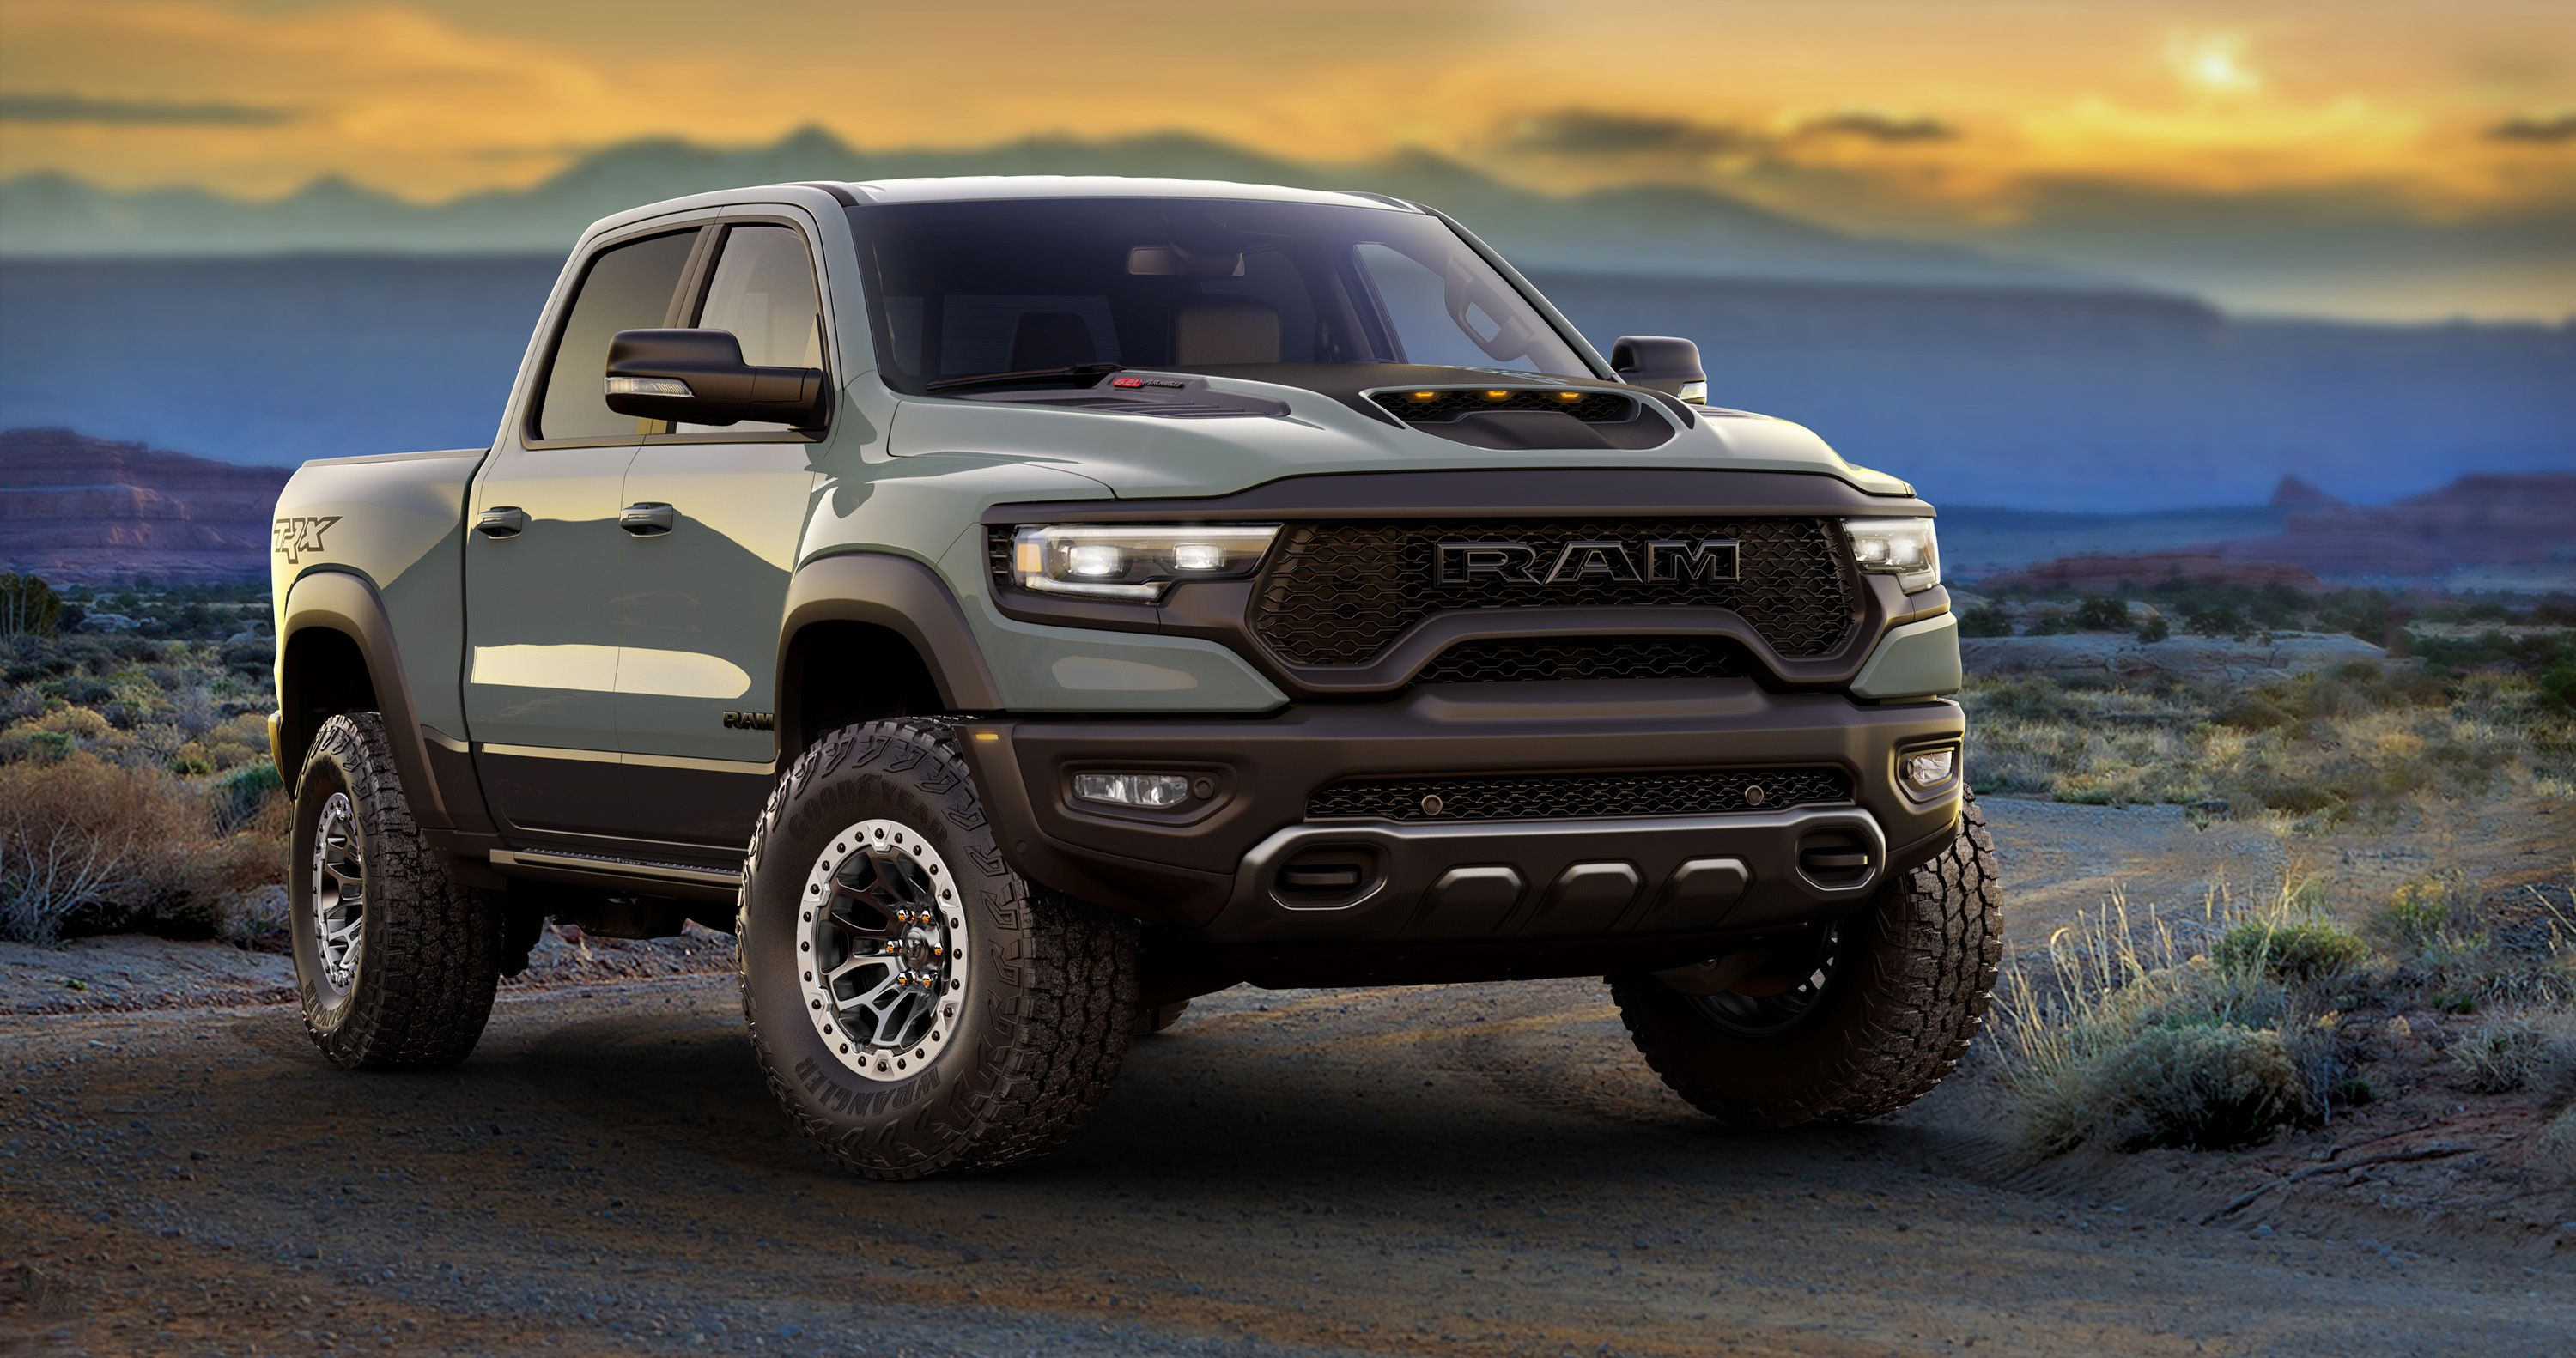 2021 Ram 1500 Trx Quick Facts And Photo Gallery Top Speed In 2020 Pickup Trucks Trx Ram 1500